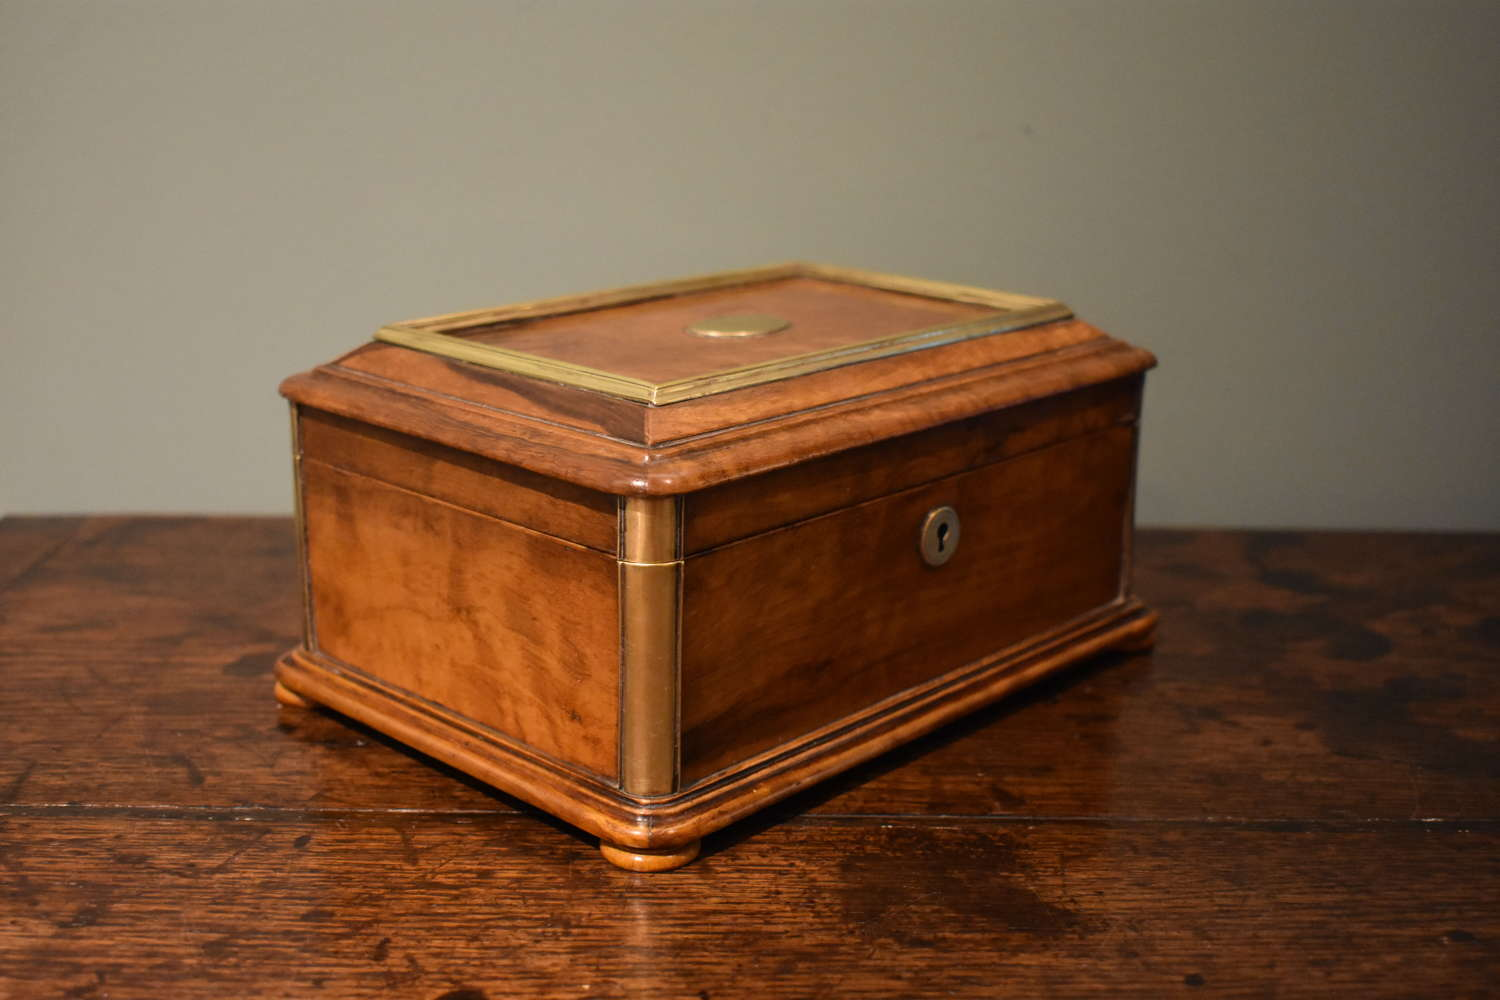 19th c. olive wood box with brass bandings